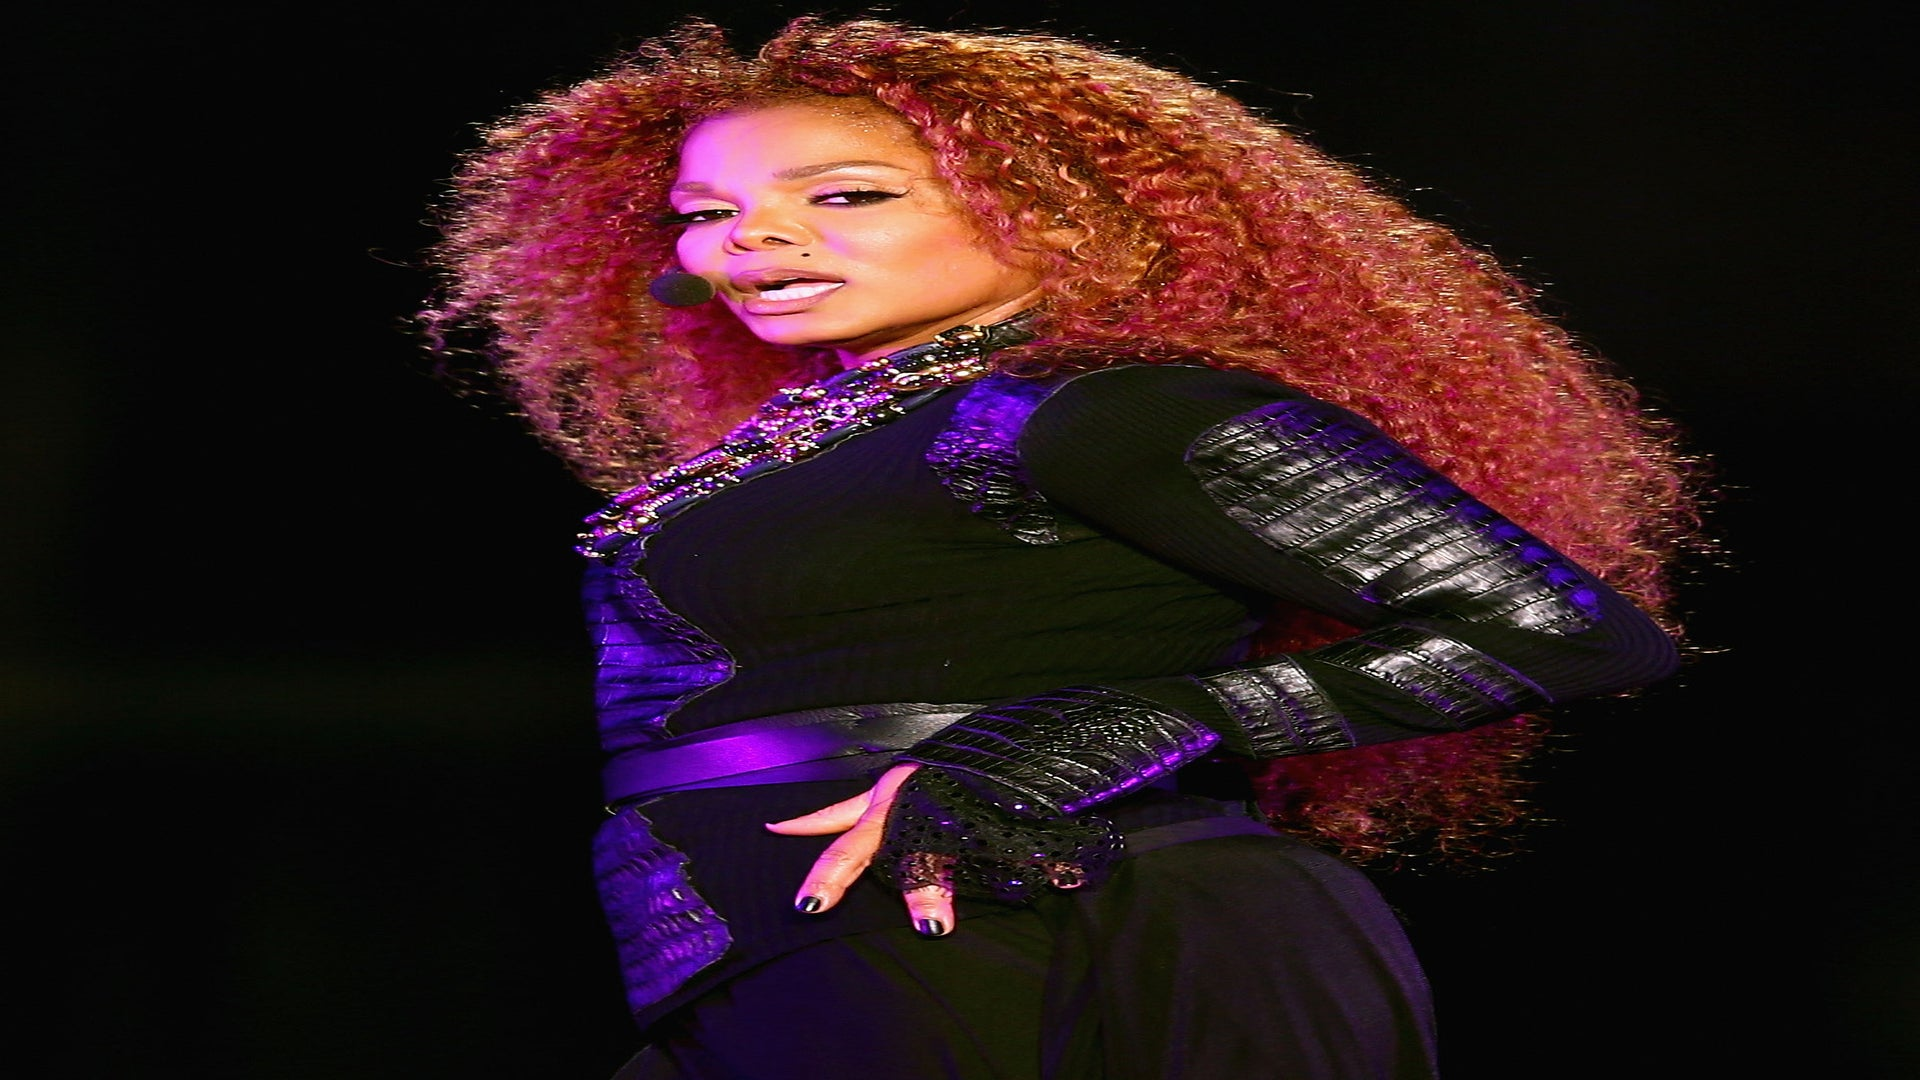 Janet Jackson 'Wants To Get Back On Stage' Post-Divorce: Source